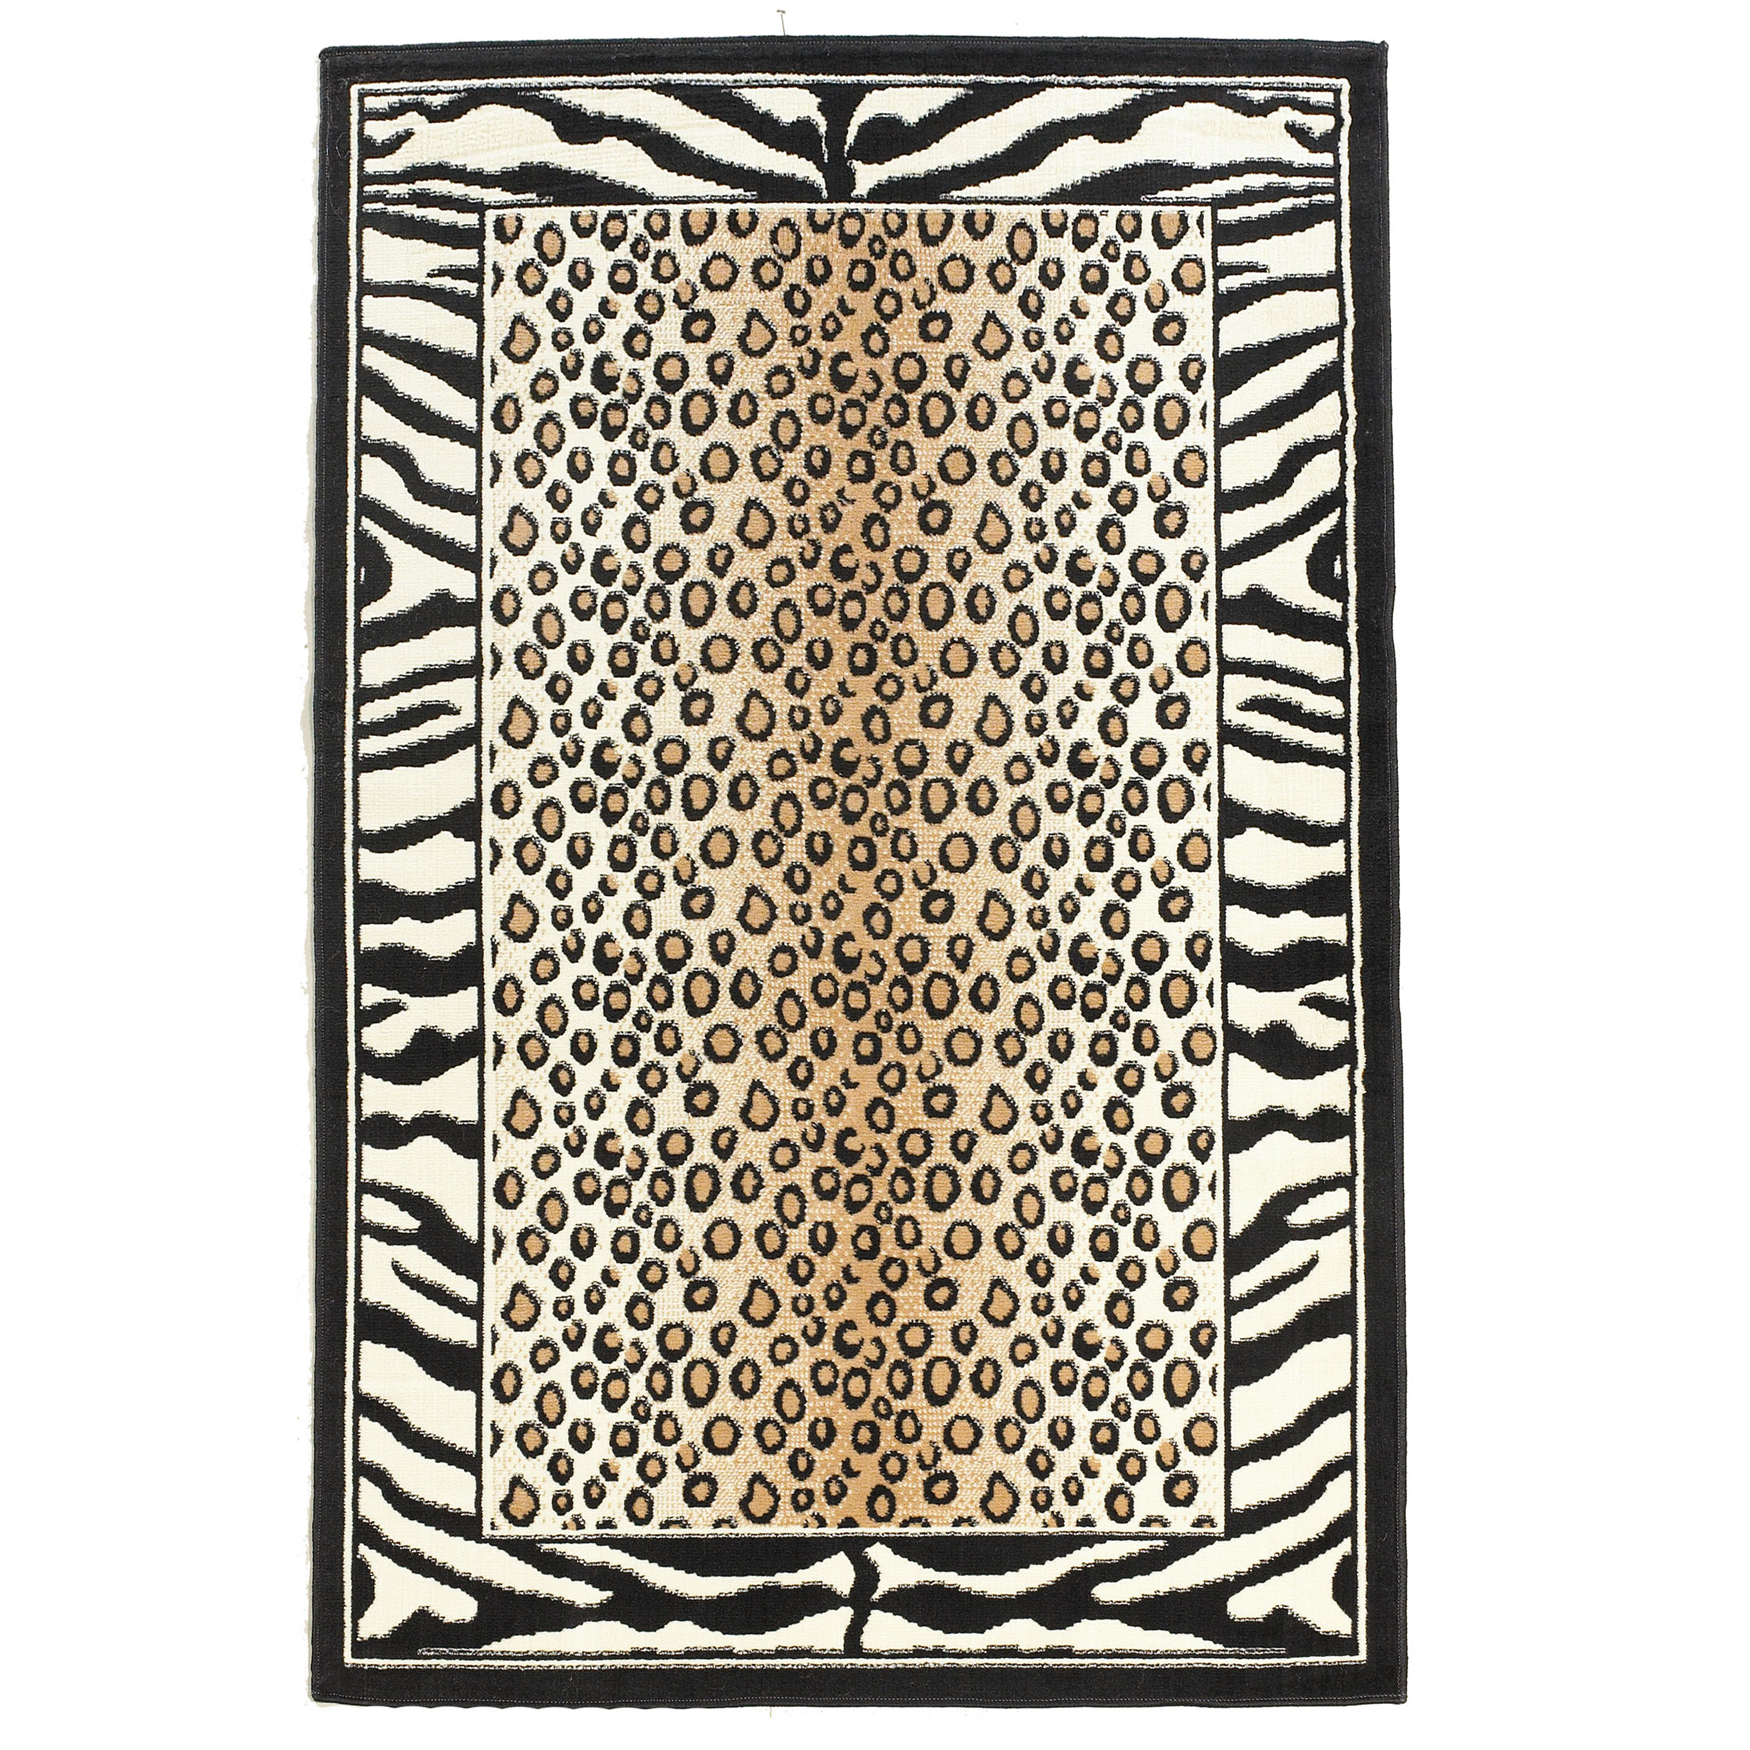 Capri Animal 5' x 7' Area Rug, ANIMAL